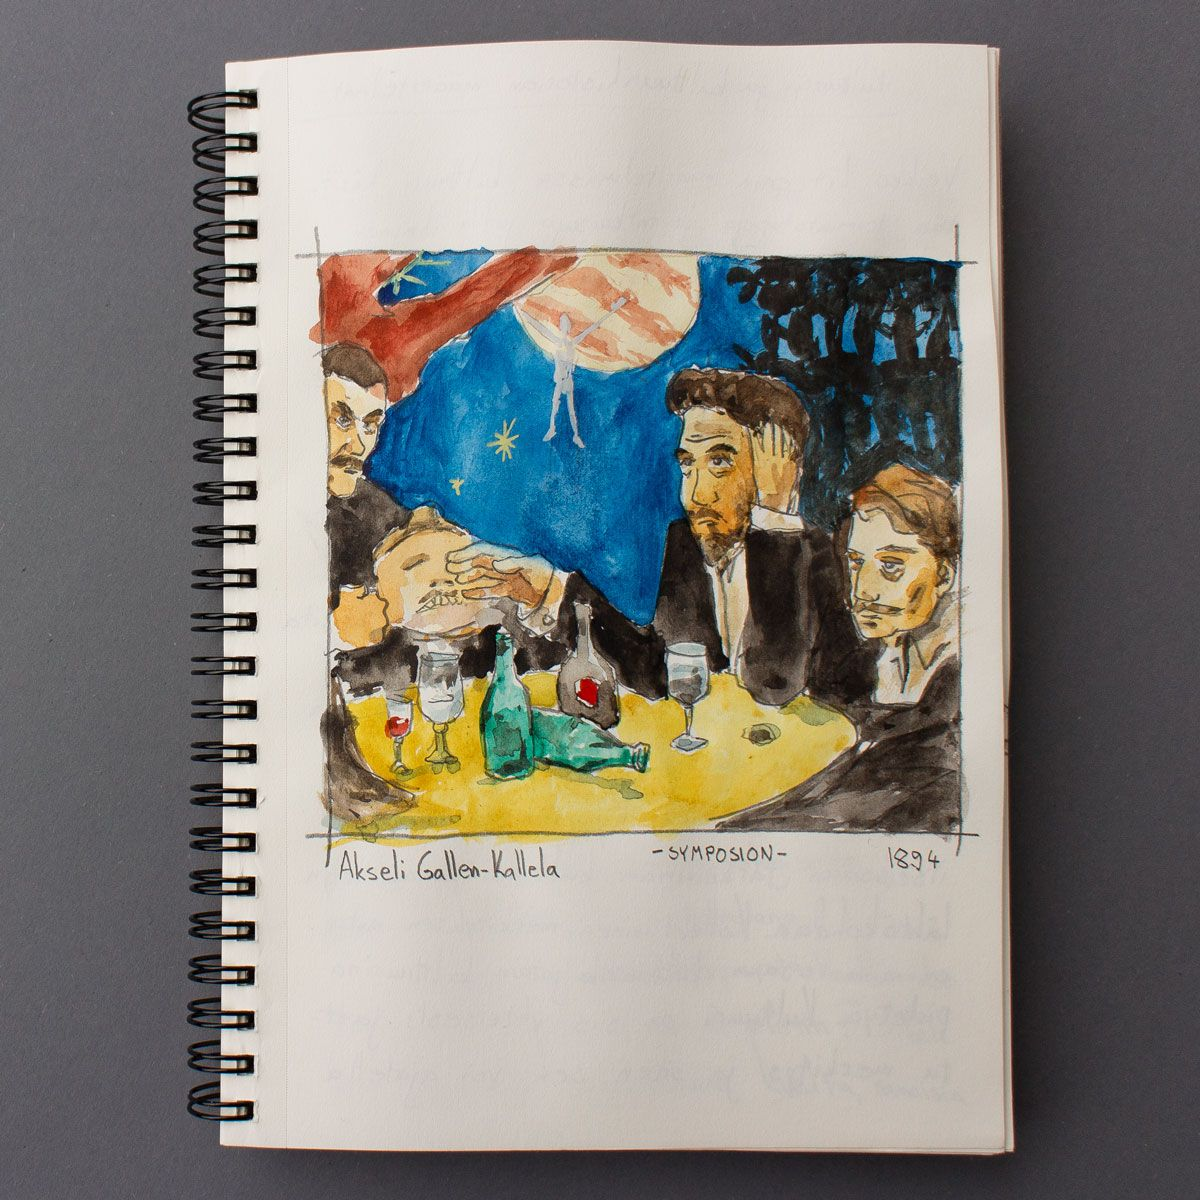 A sketch from the Gallen-Kallelas painting Symposion. By Petri Fills #sketching #gallenkallela